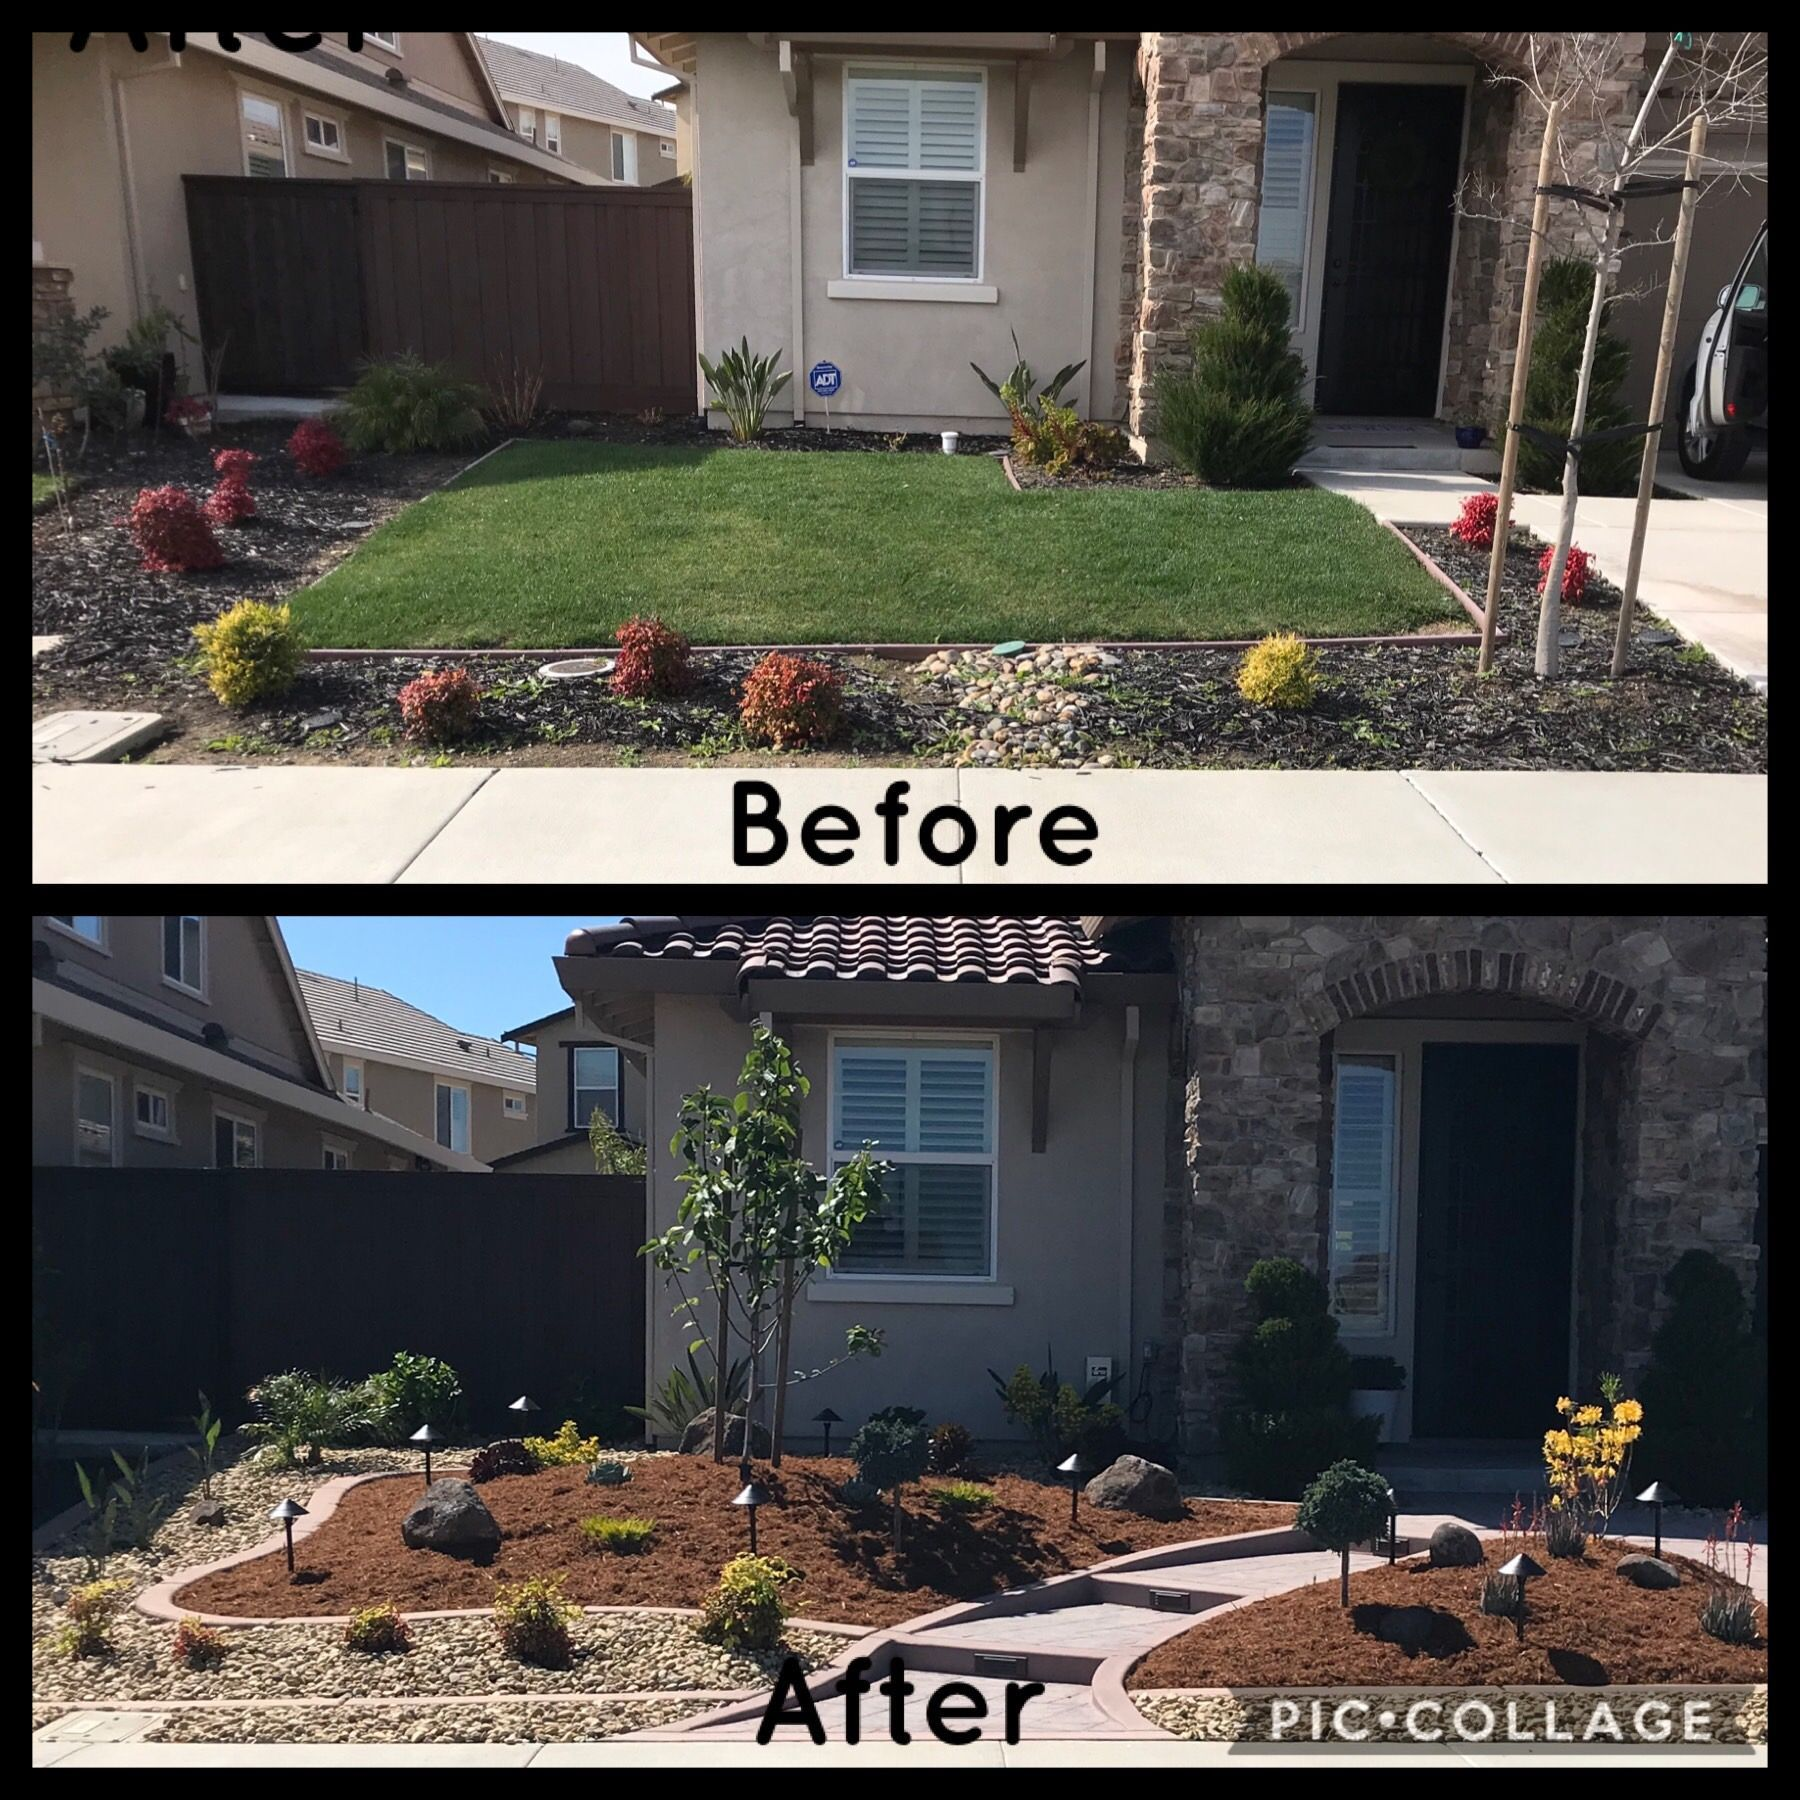 We Redesigned Our Front Landscape Removing The Lawn And Adding A New Hardscape We Hired A Contr Yard Water Fountains Pergola Pictures Outdoor Garden Furniture